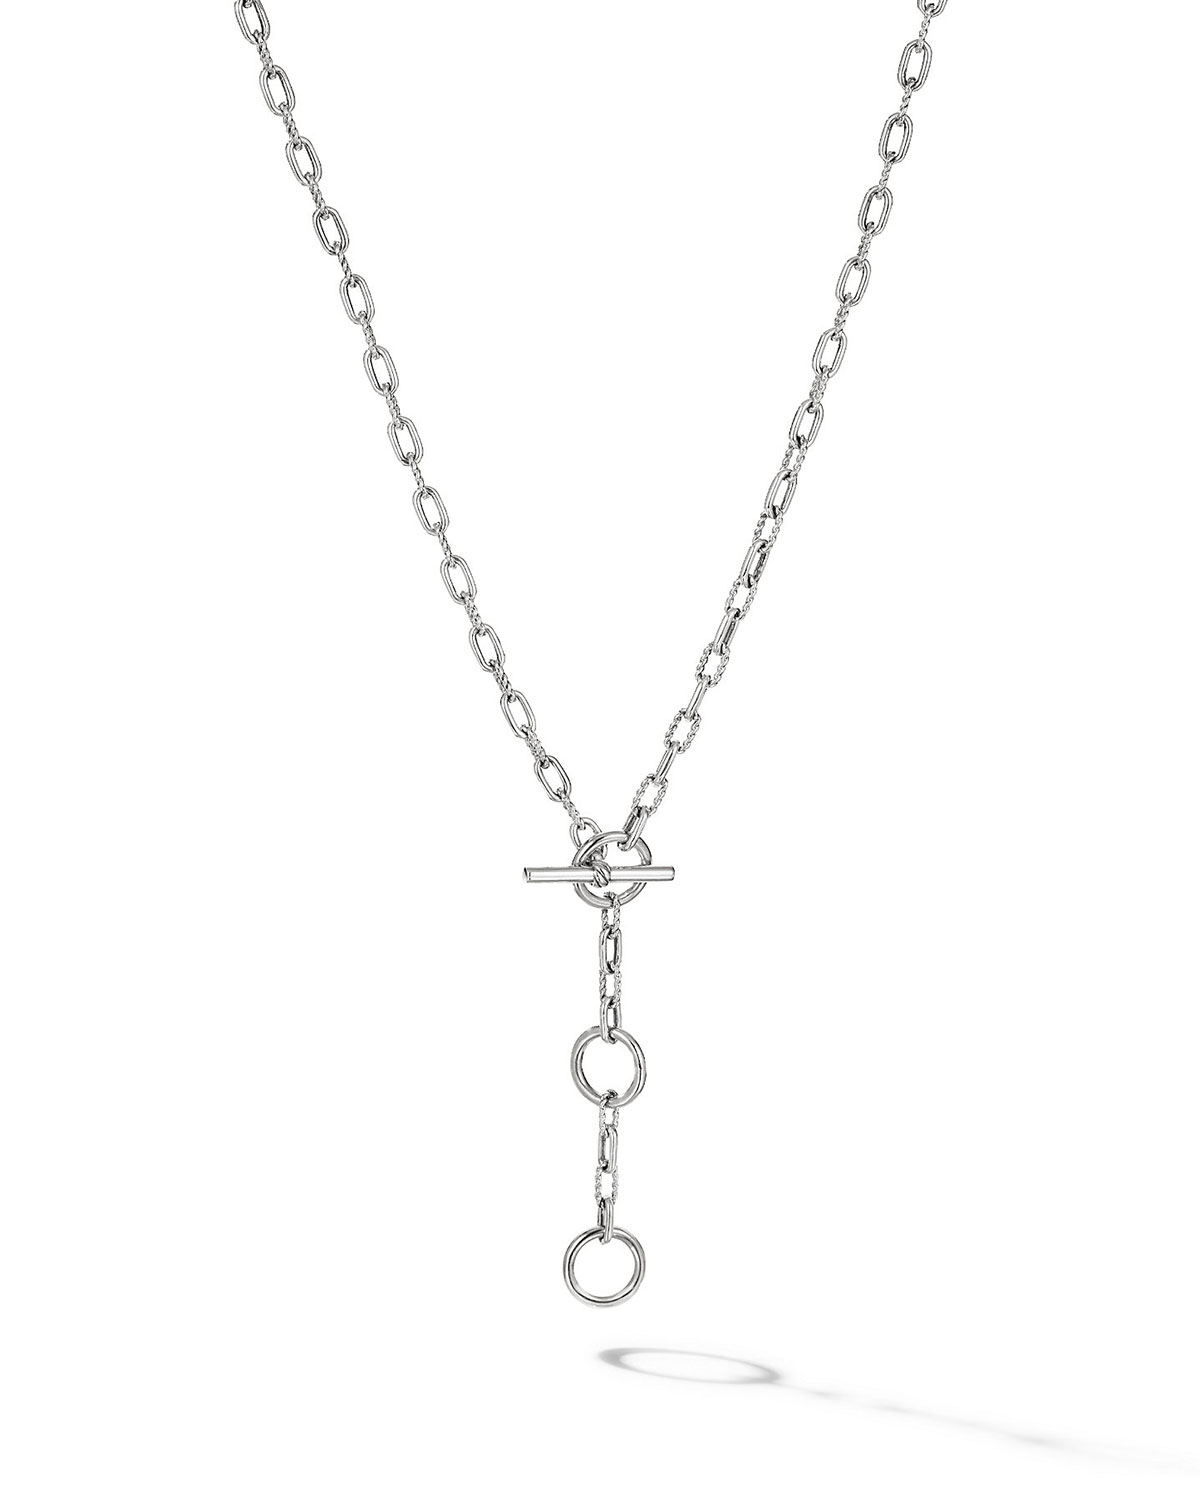 DY Madison Three-Ring Chain Necklace